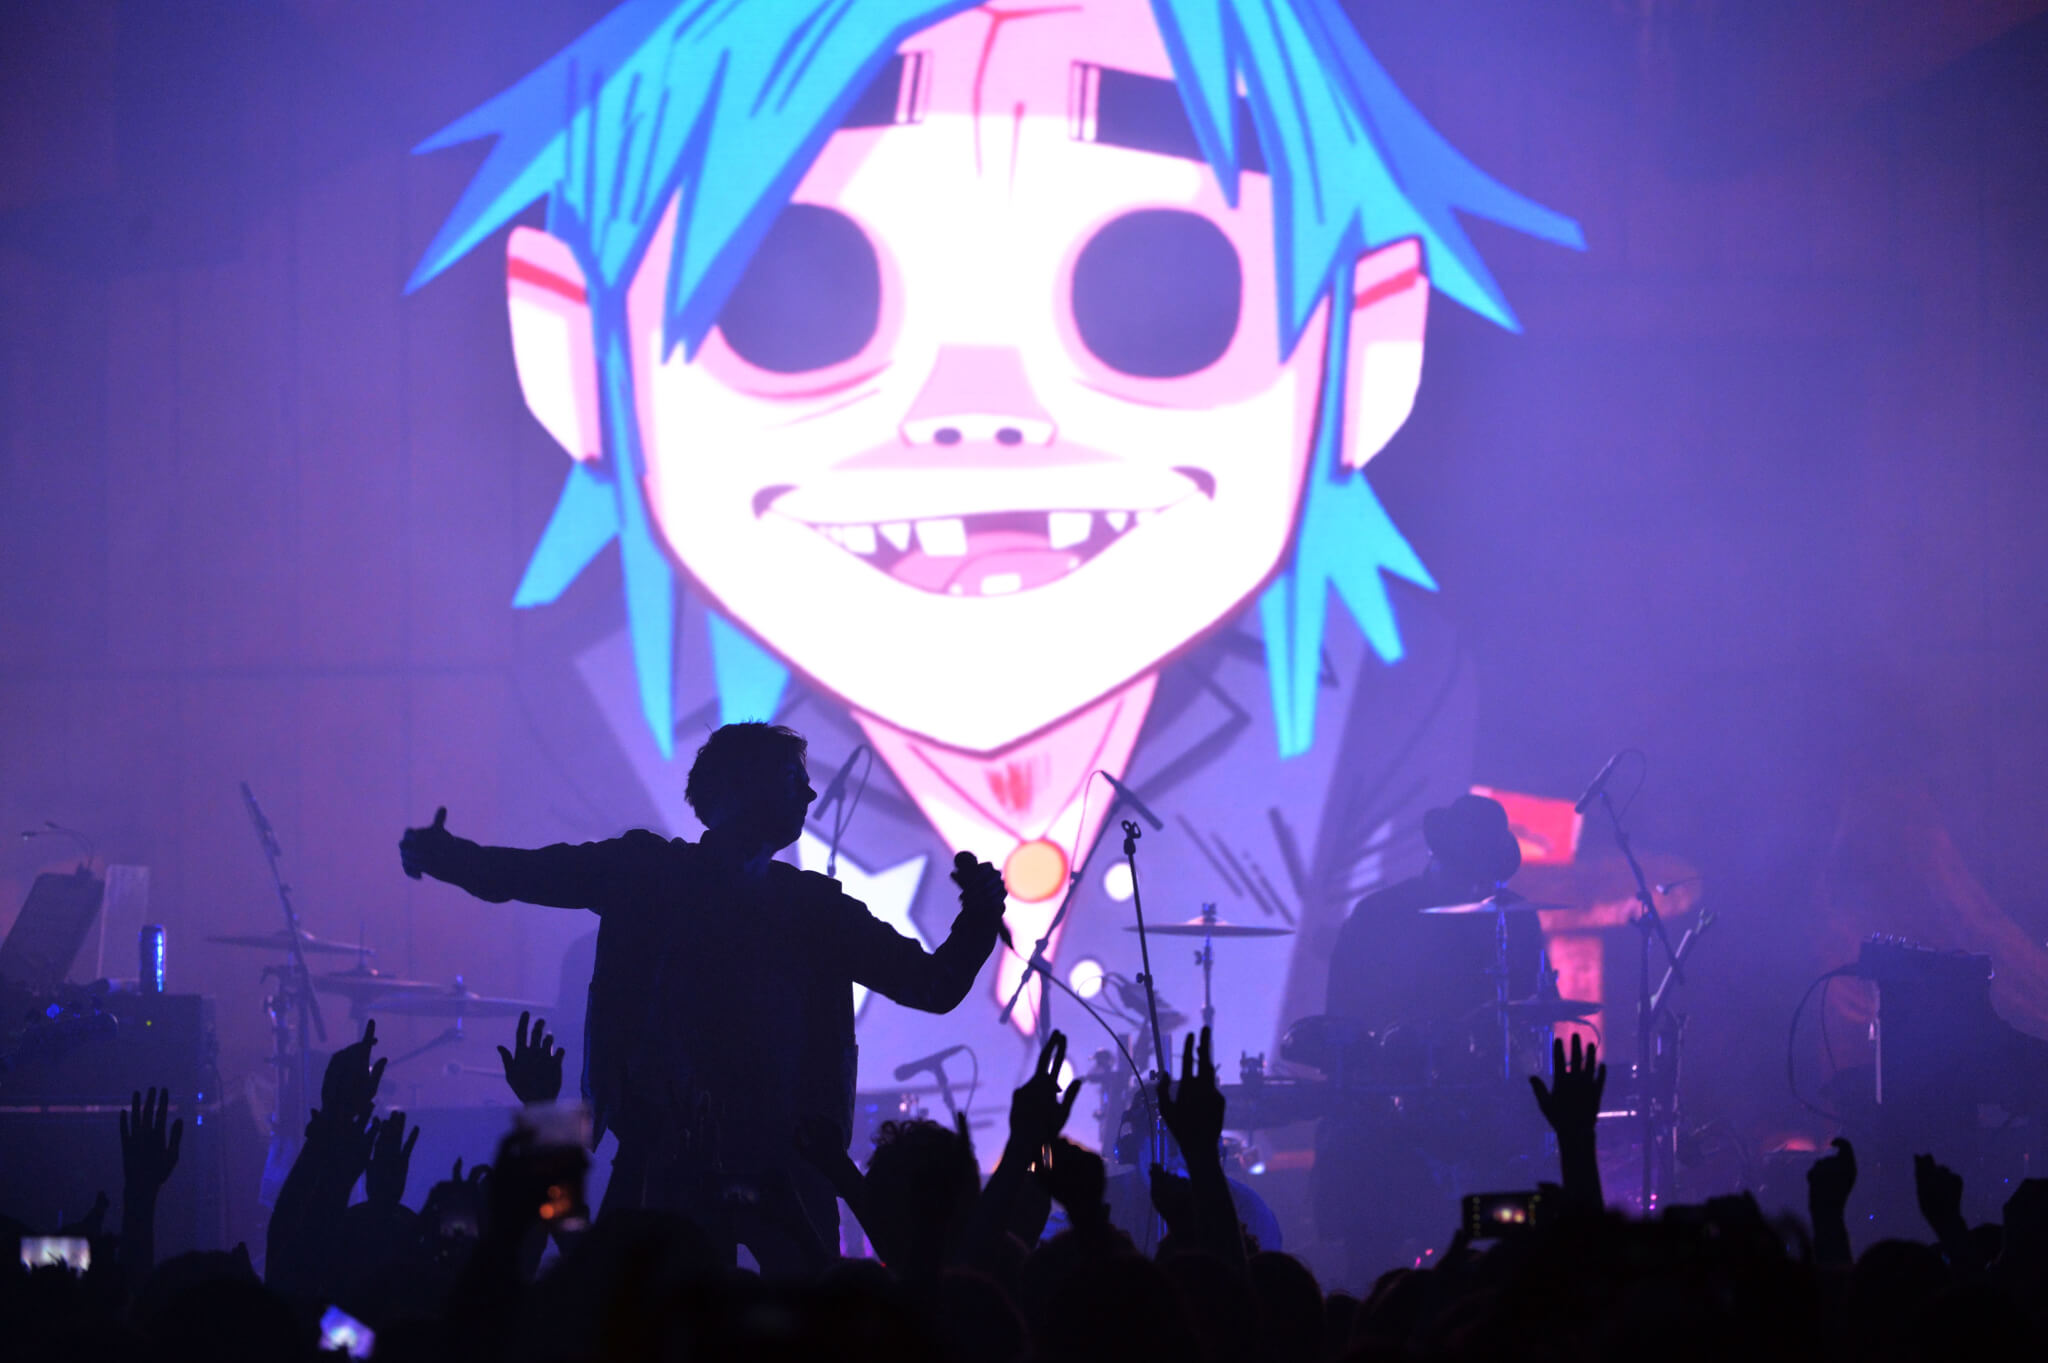 HUMANZ PLAYED LIVE IN FULL AT PRINTWORKS